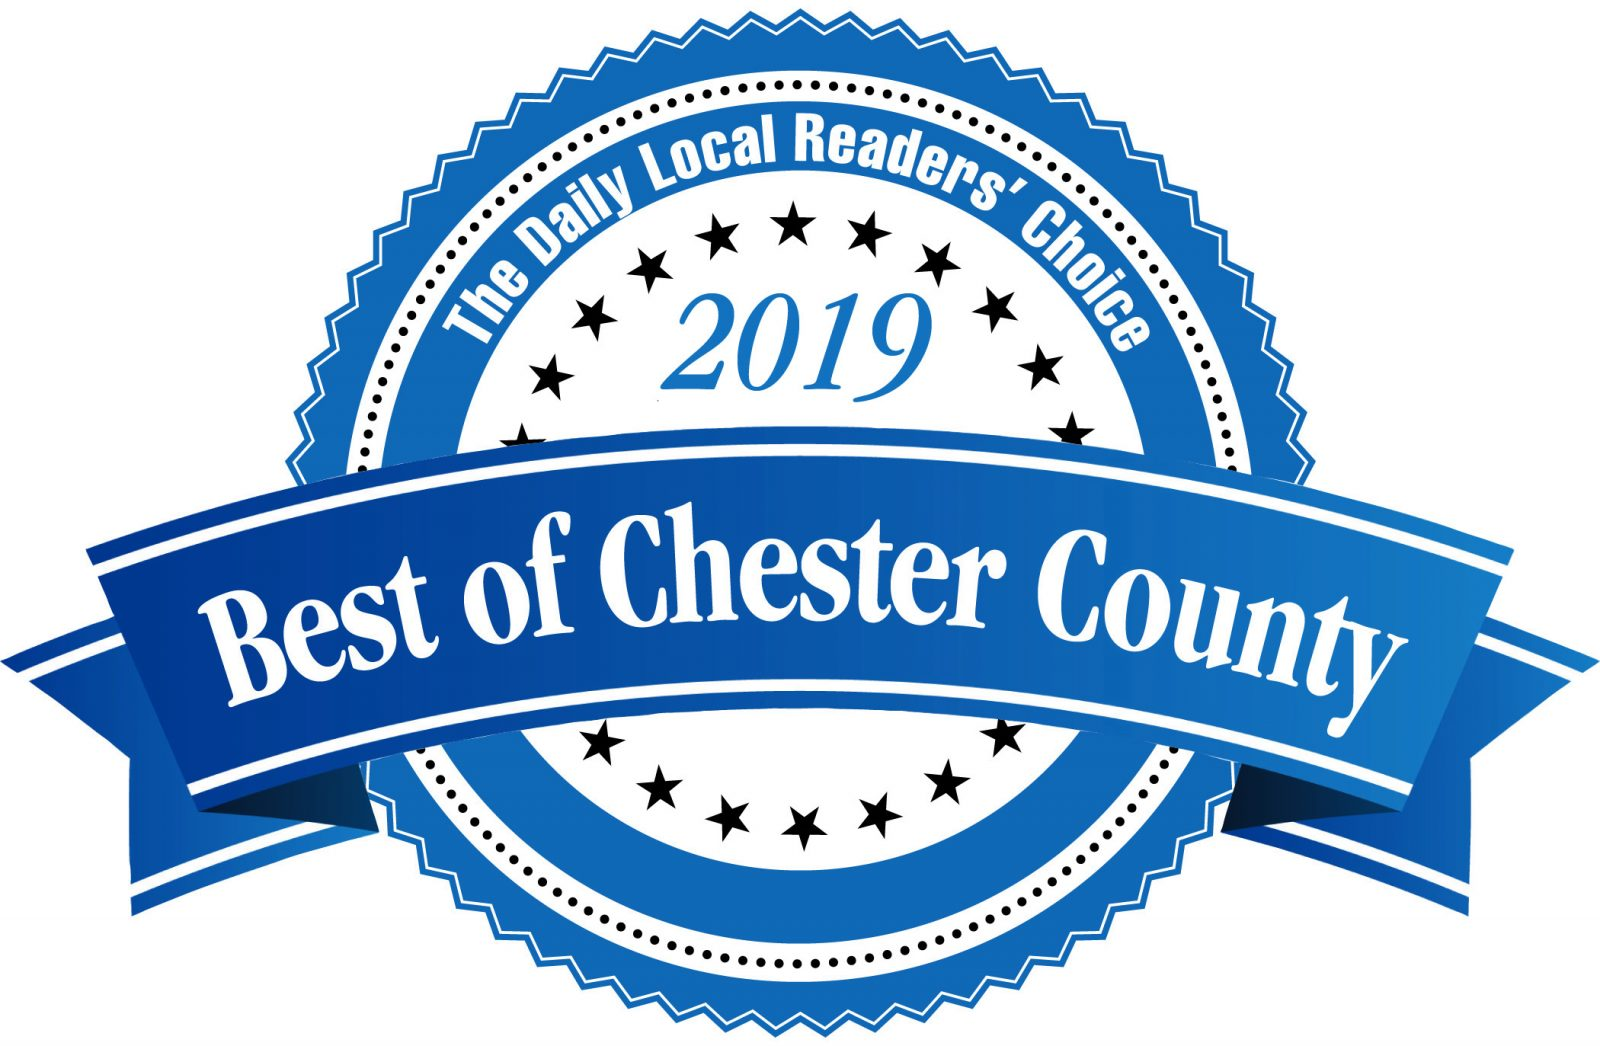 Best of chester county logo | Boyle's Floor & Window Design